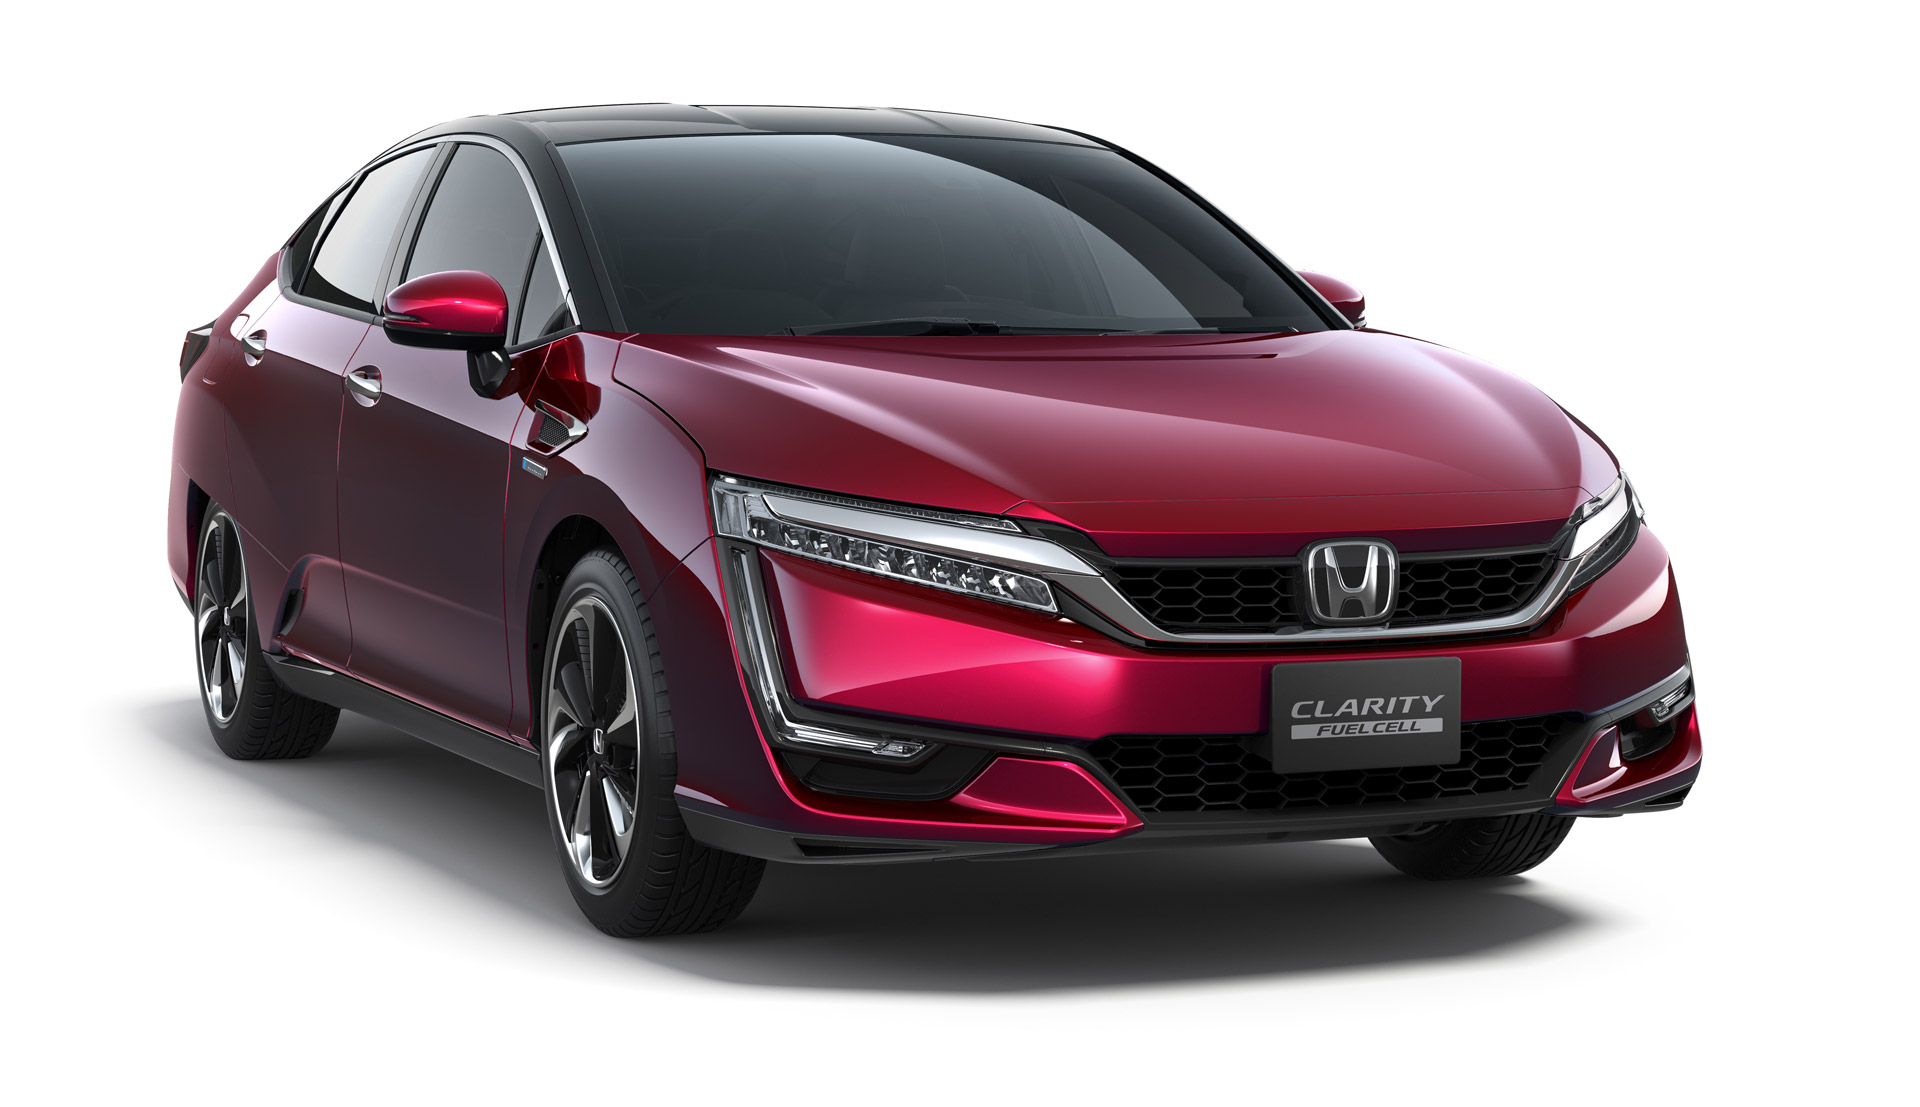 Honda Clarity On Late In 2016 Plug Hybrid To Get 40 Miles Of Range